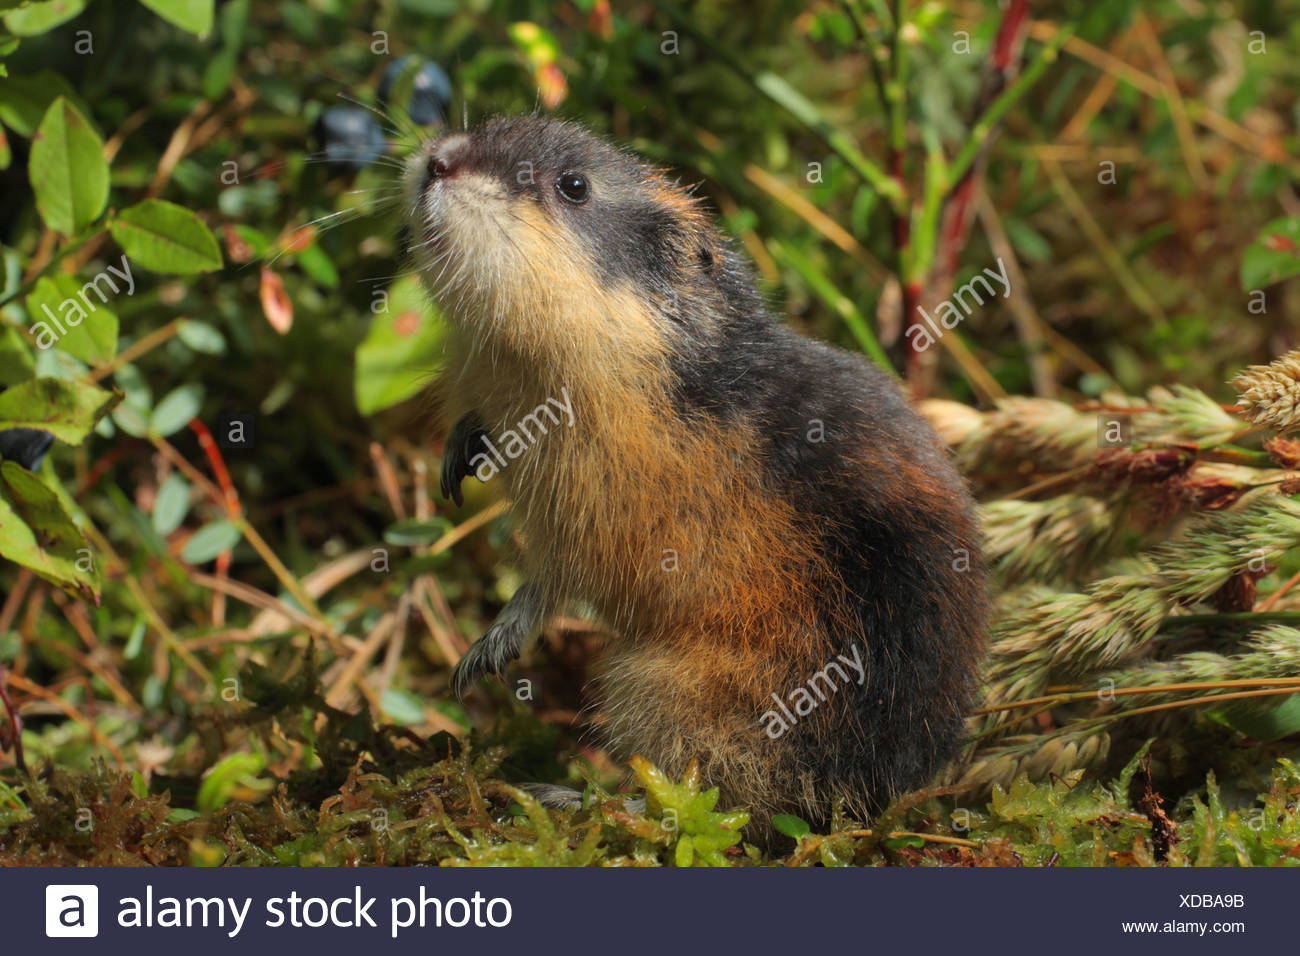 Norway lemming (Lemmus lemmus), upright, snuffing - Stock Image